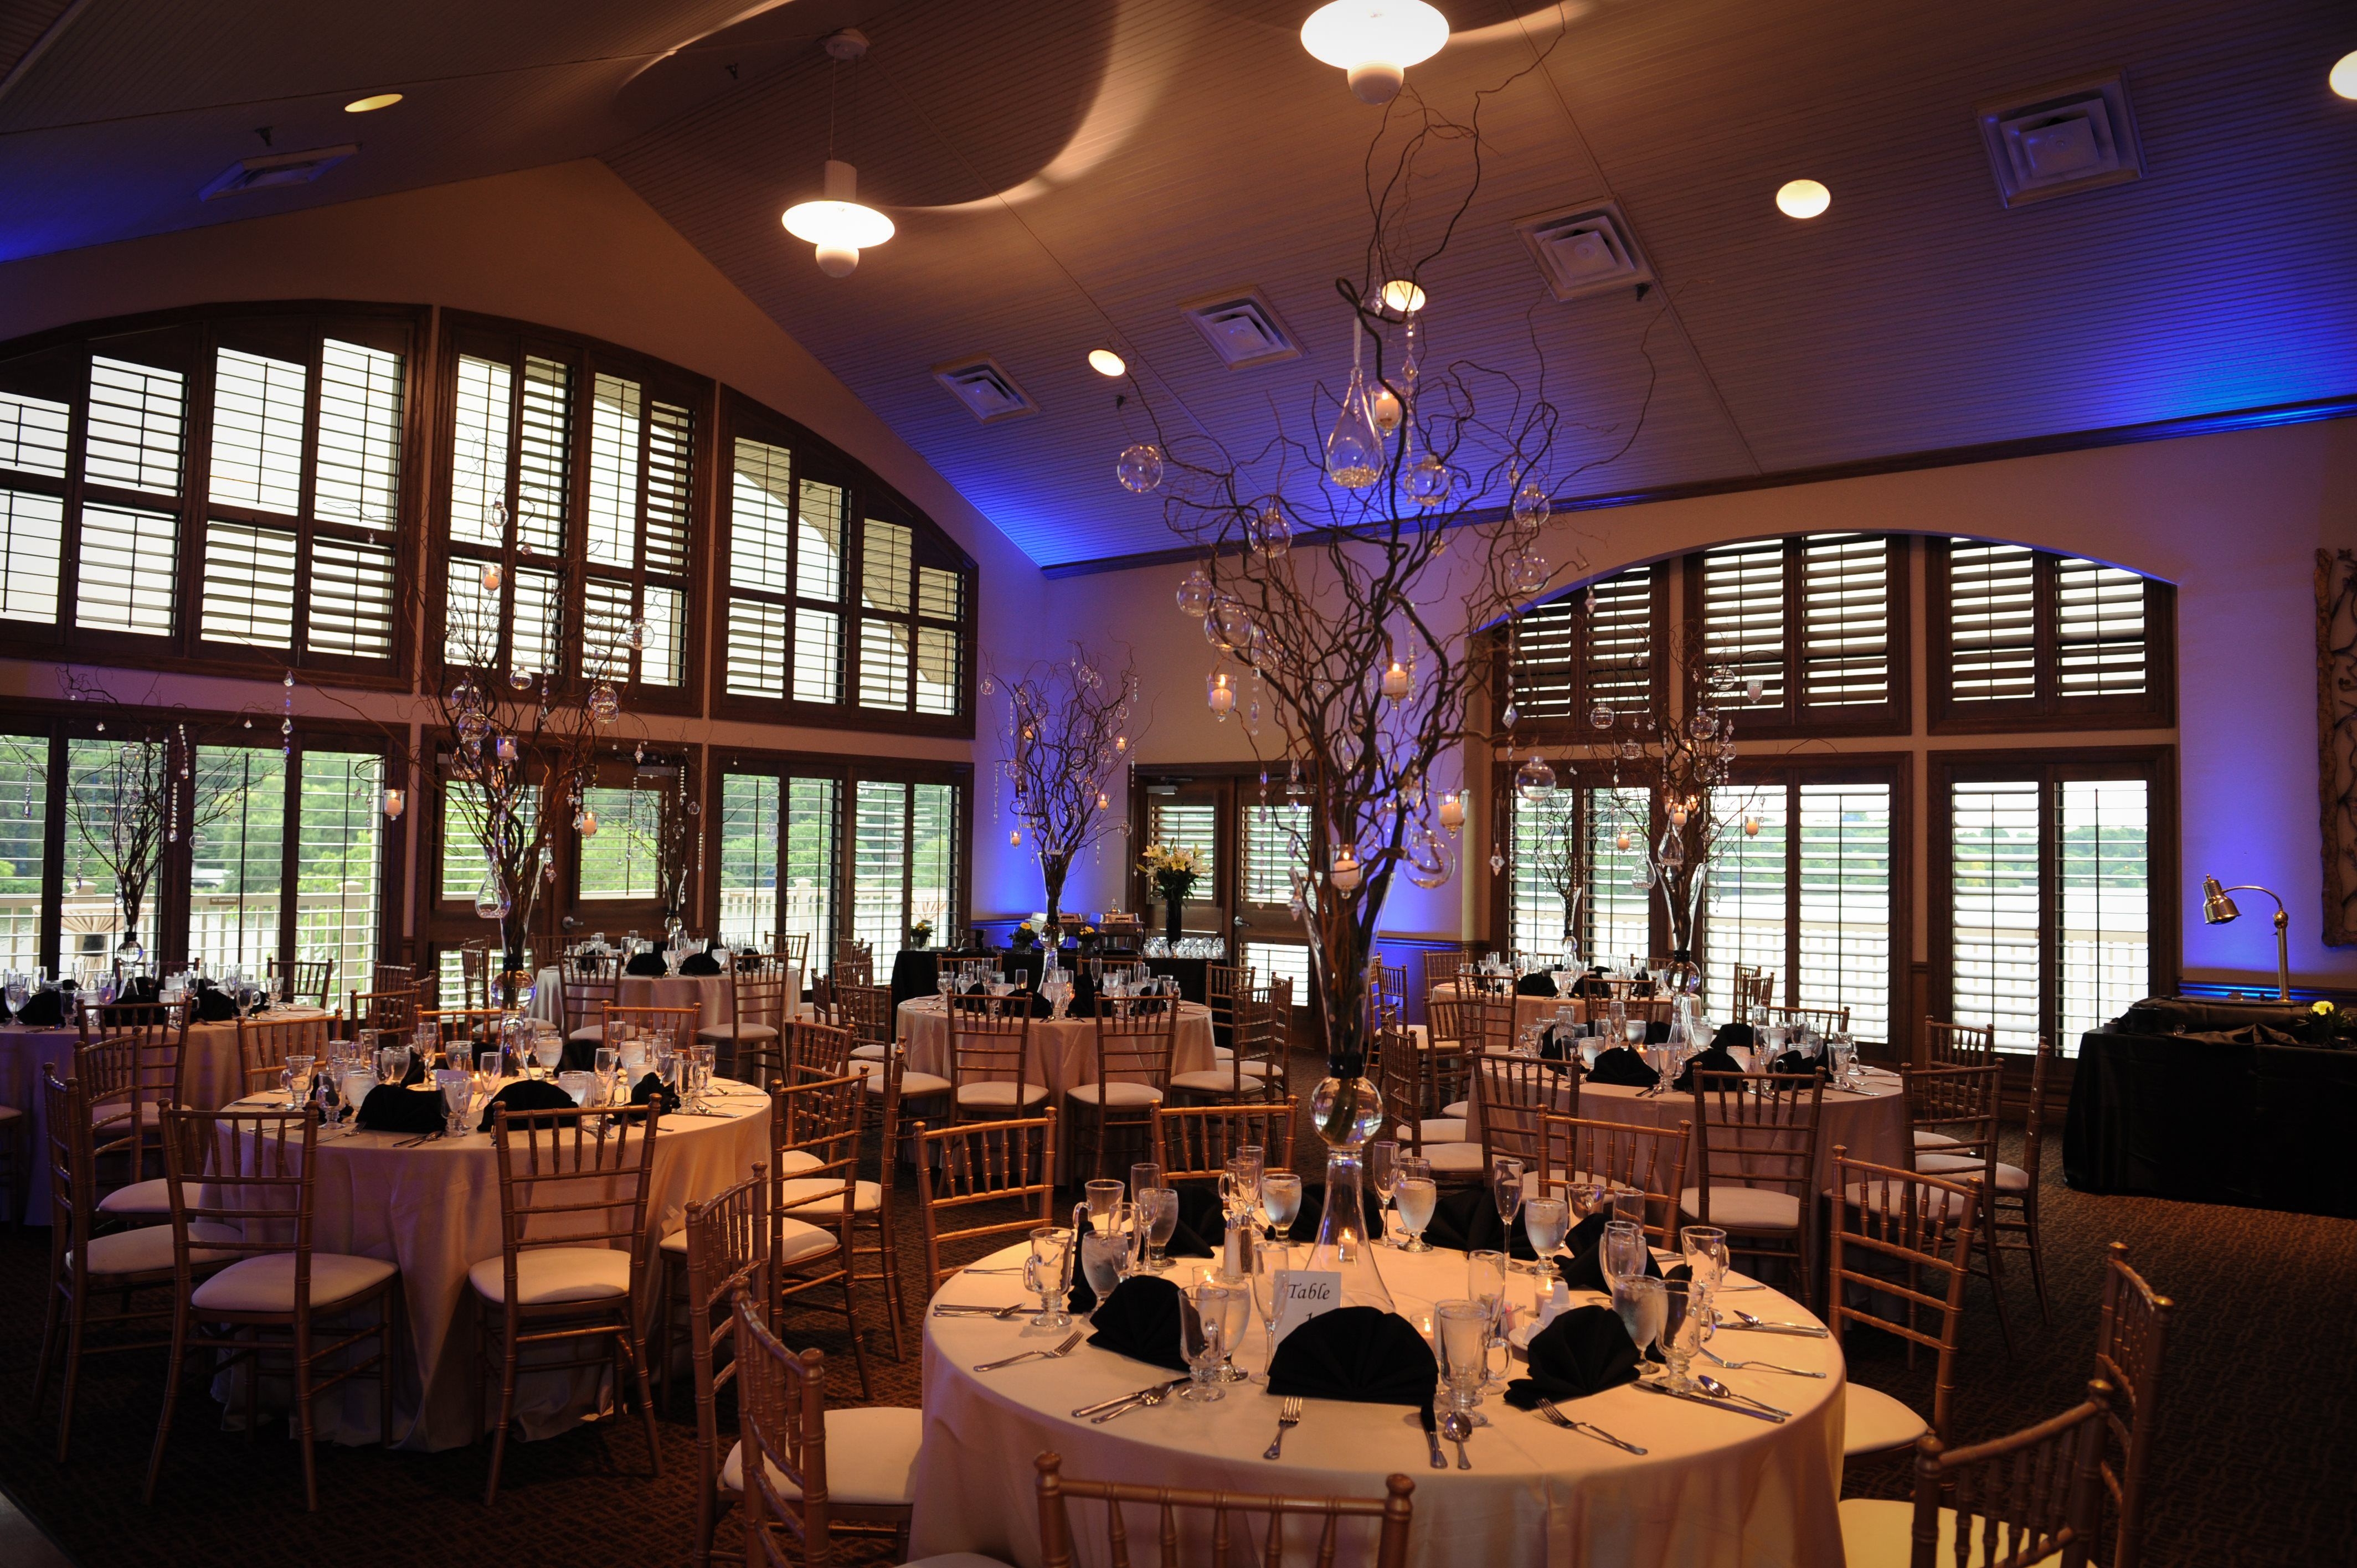 The Camden County Boathouse Located In Pennsauken Nj Is One Of Sensational Host S Preferred Venues For Wedding Corporate And Social Event Catering